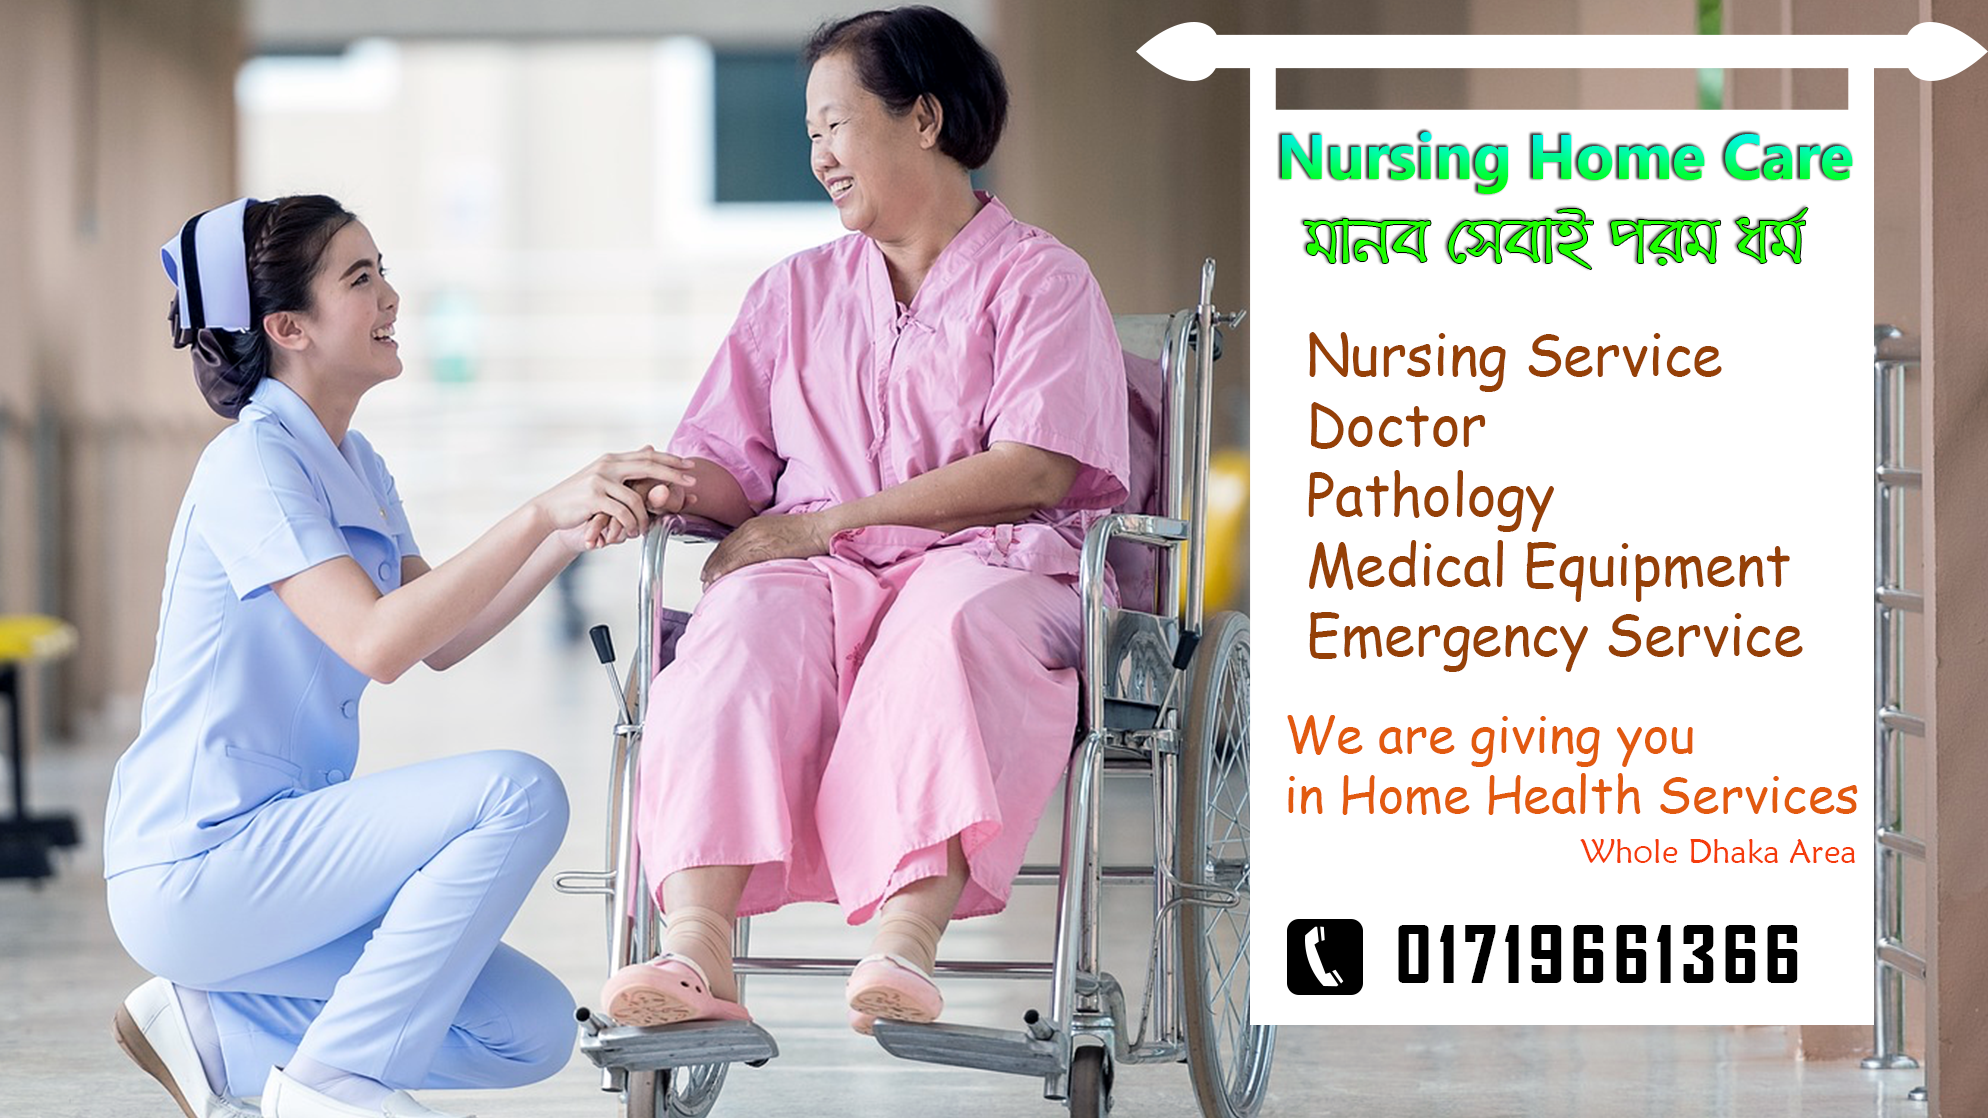 Nursing Home Care Contact Number